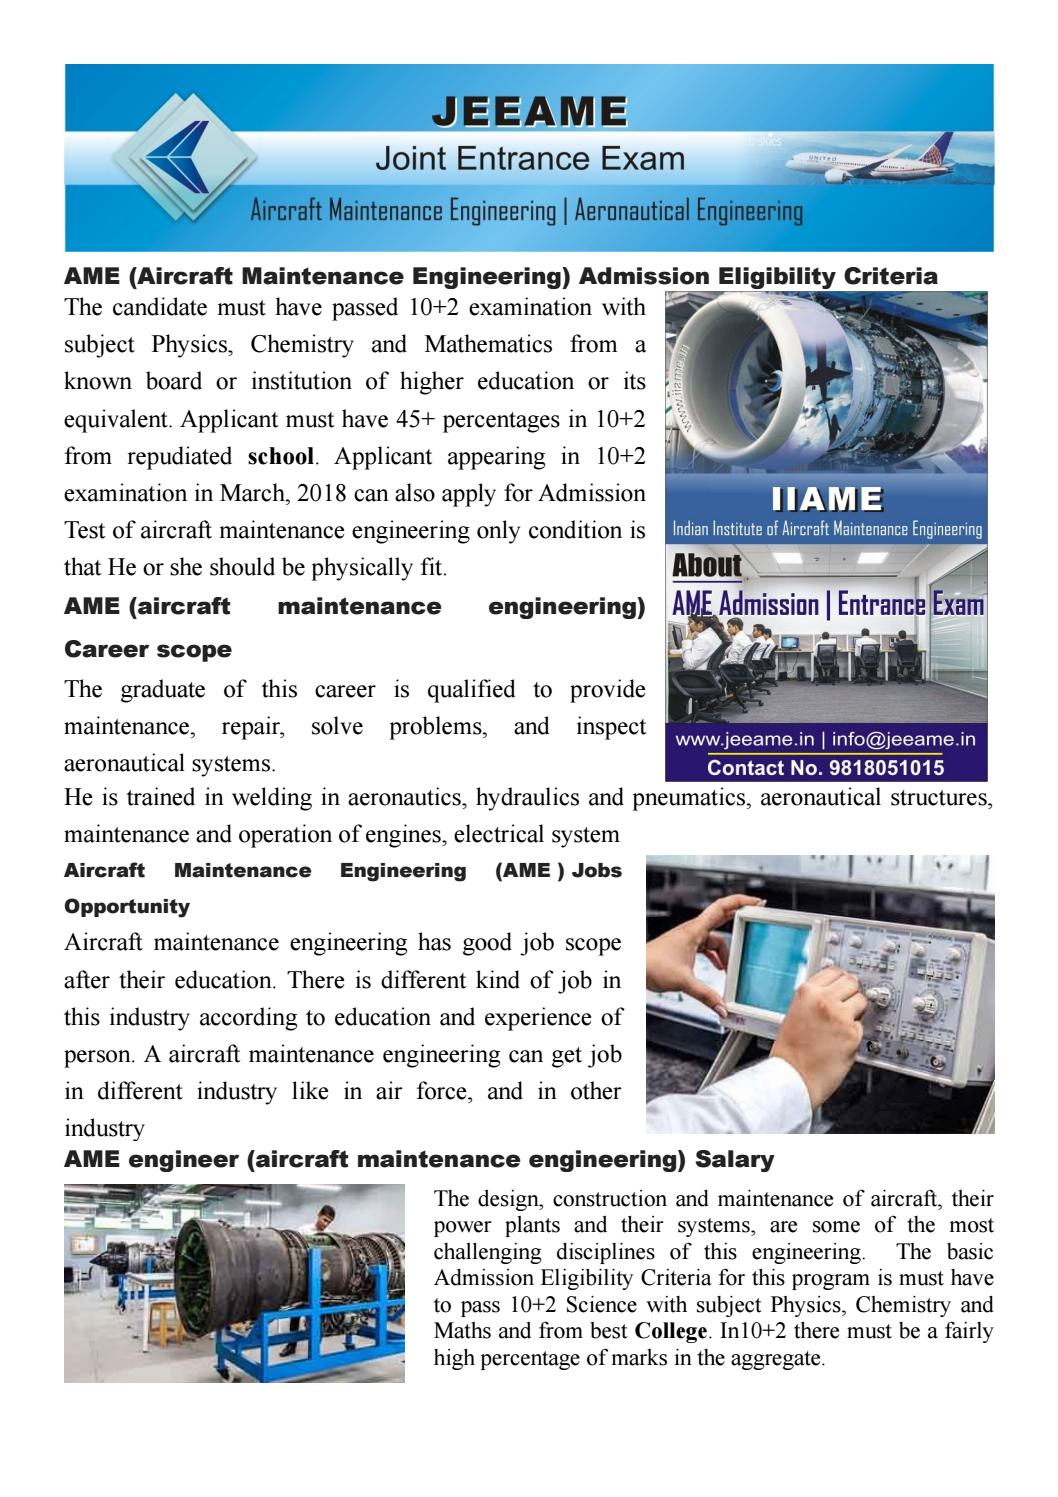 Ame Aircraft Maintenance Engineering Career Scope Jobs Salary Jeeame By Joint Entrance Examination Ame 2018 19 Issuu